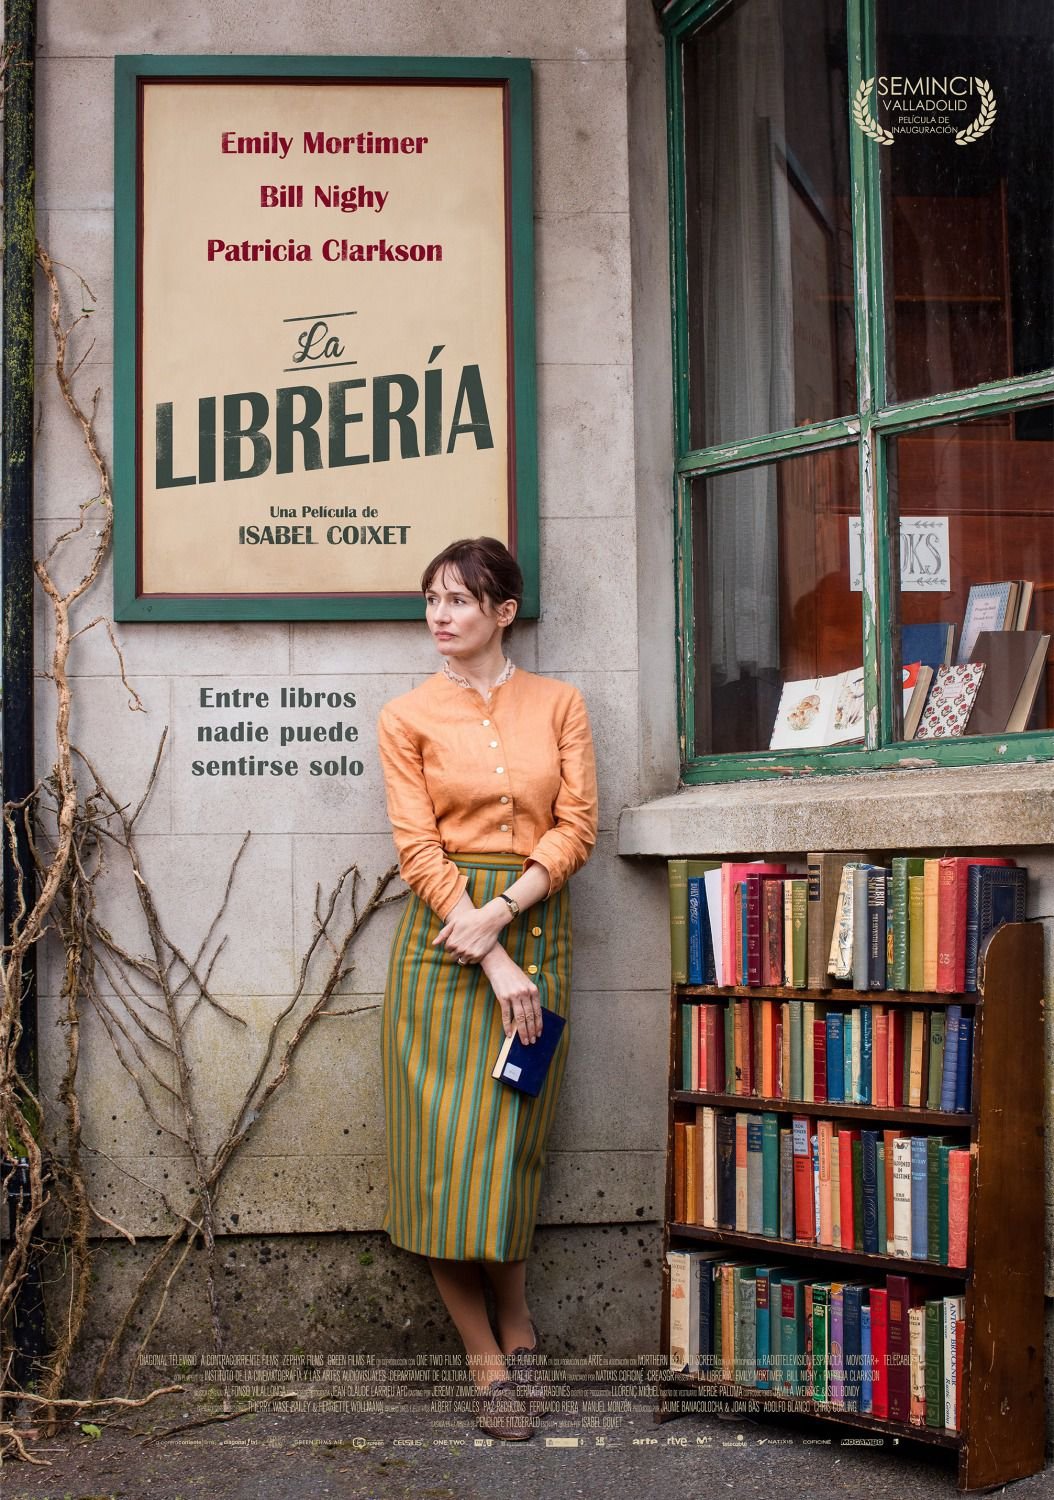 The Bookshop - La Libreria - cast Emily Mortimer, Bill Nighy, Patricia Clarkson - film poster